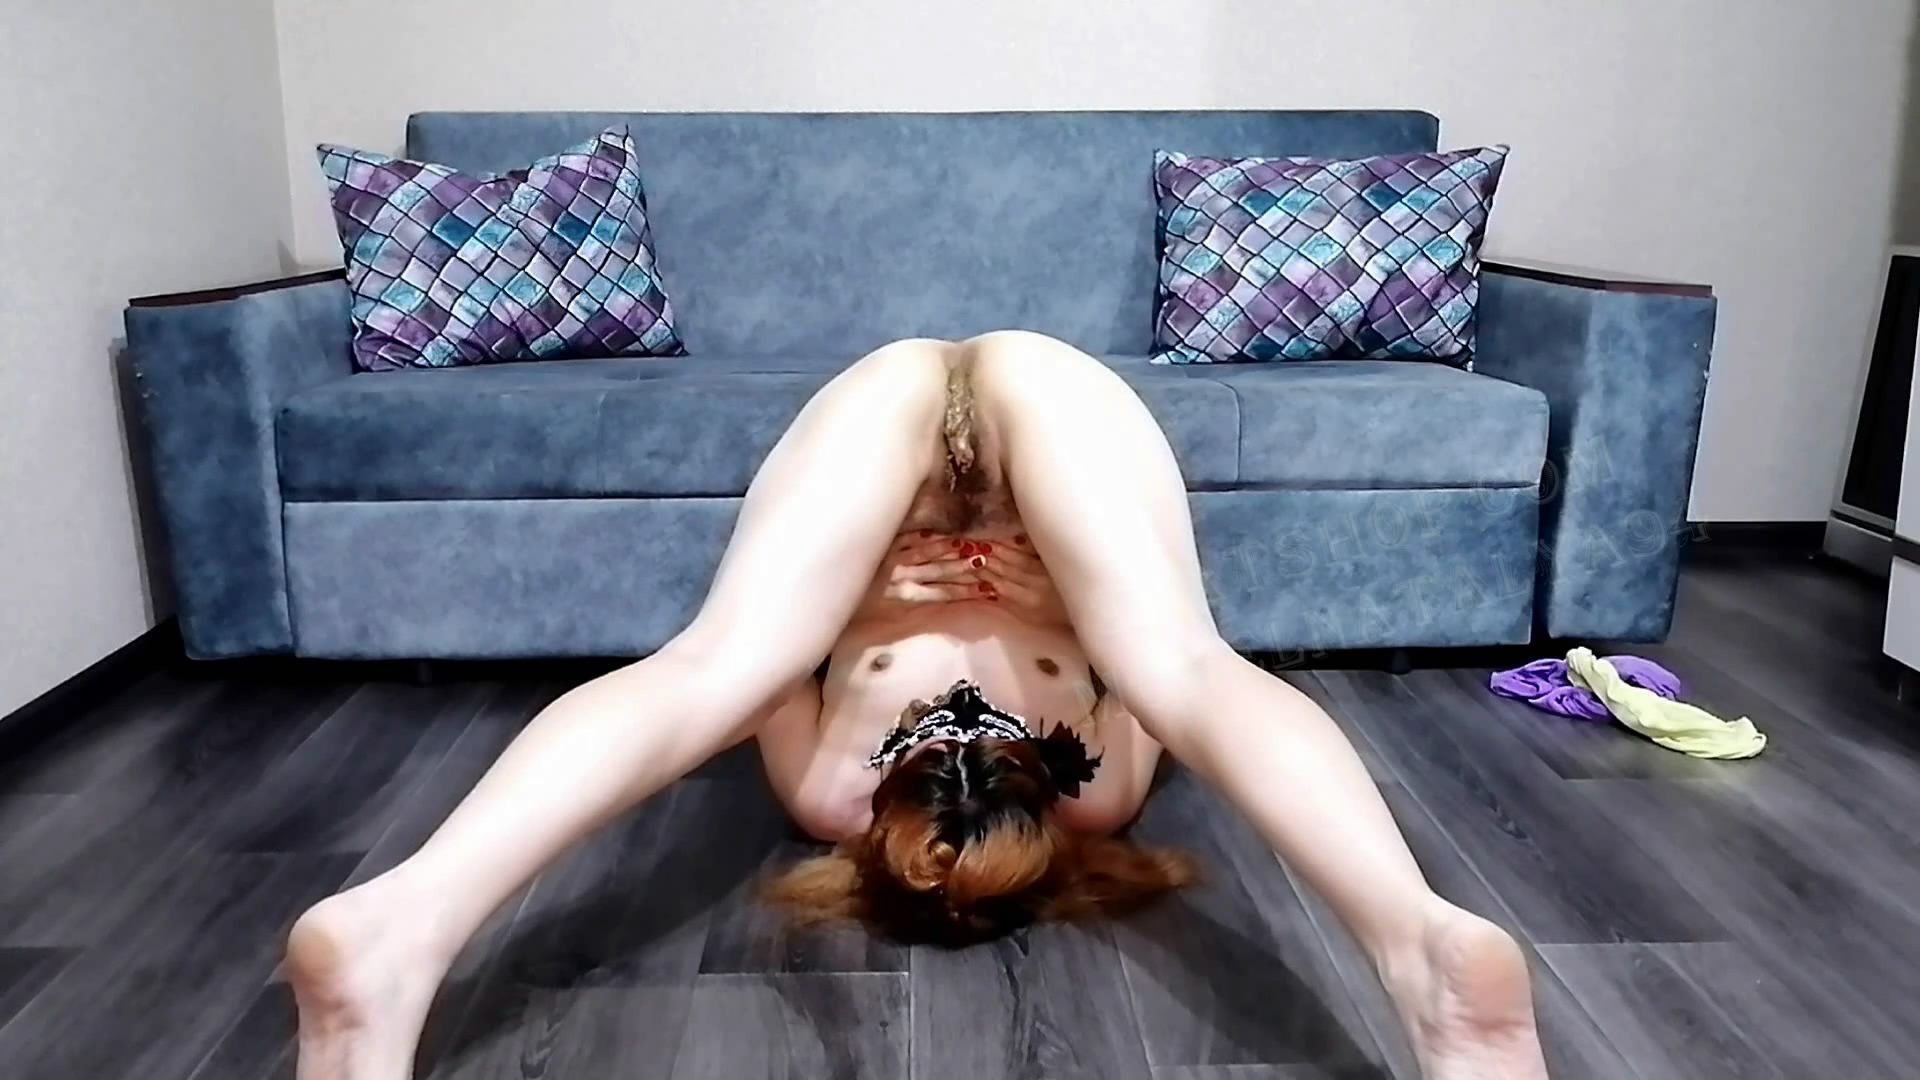 Olga's naked body is all in shit starring in video ModelNatalya94 ($14.99 ScatShop) – Smearing